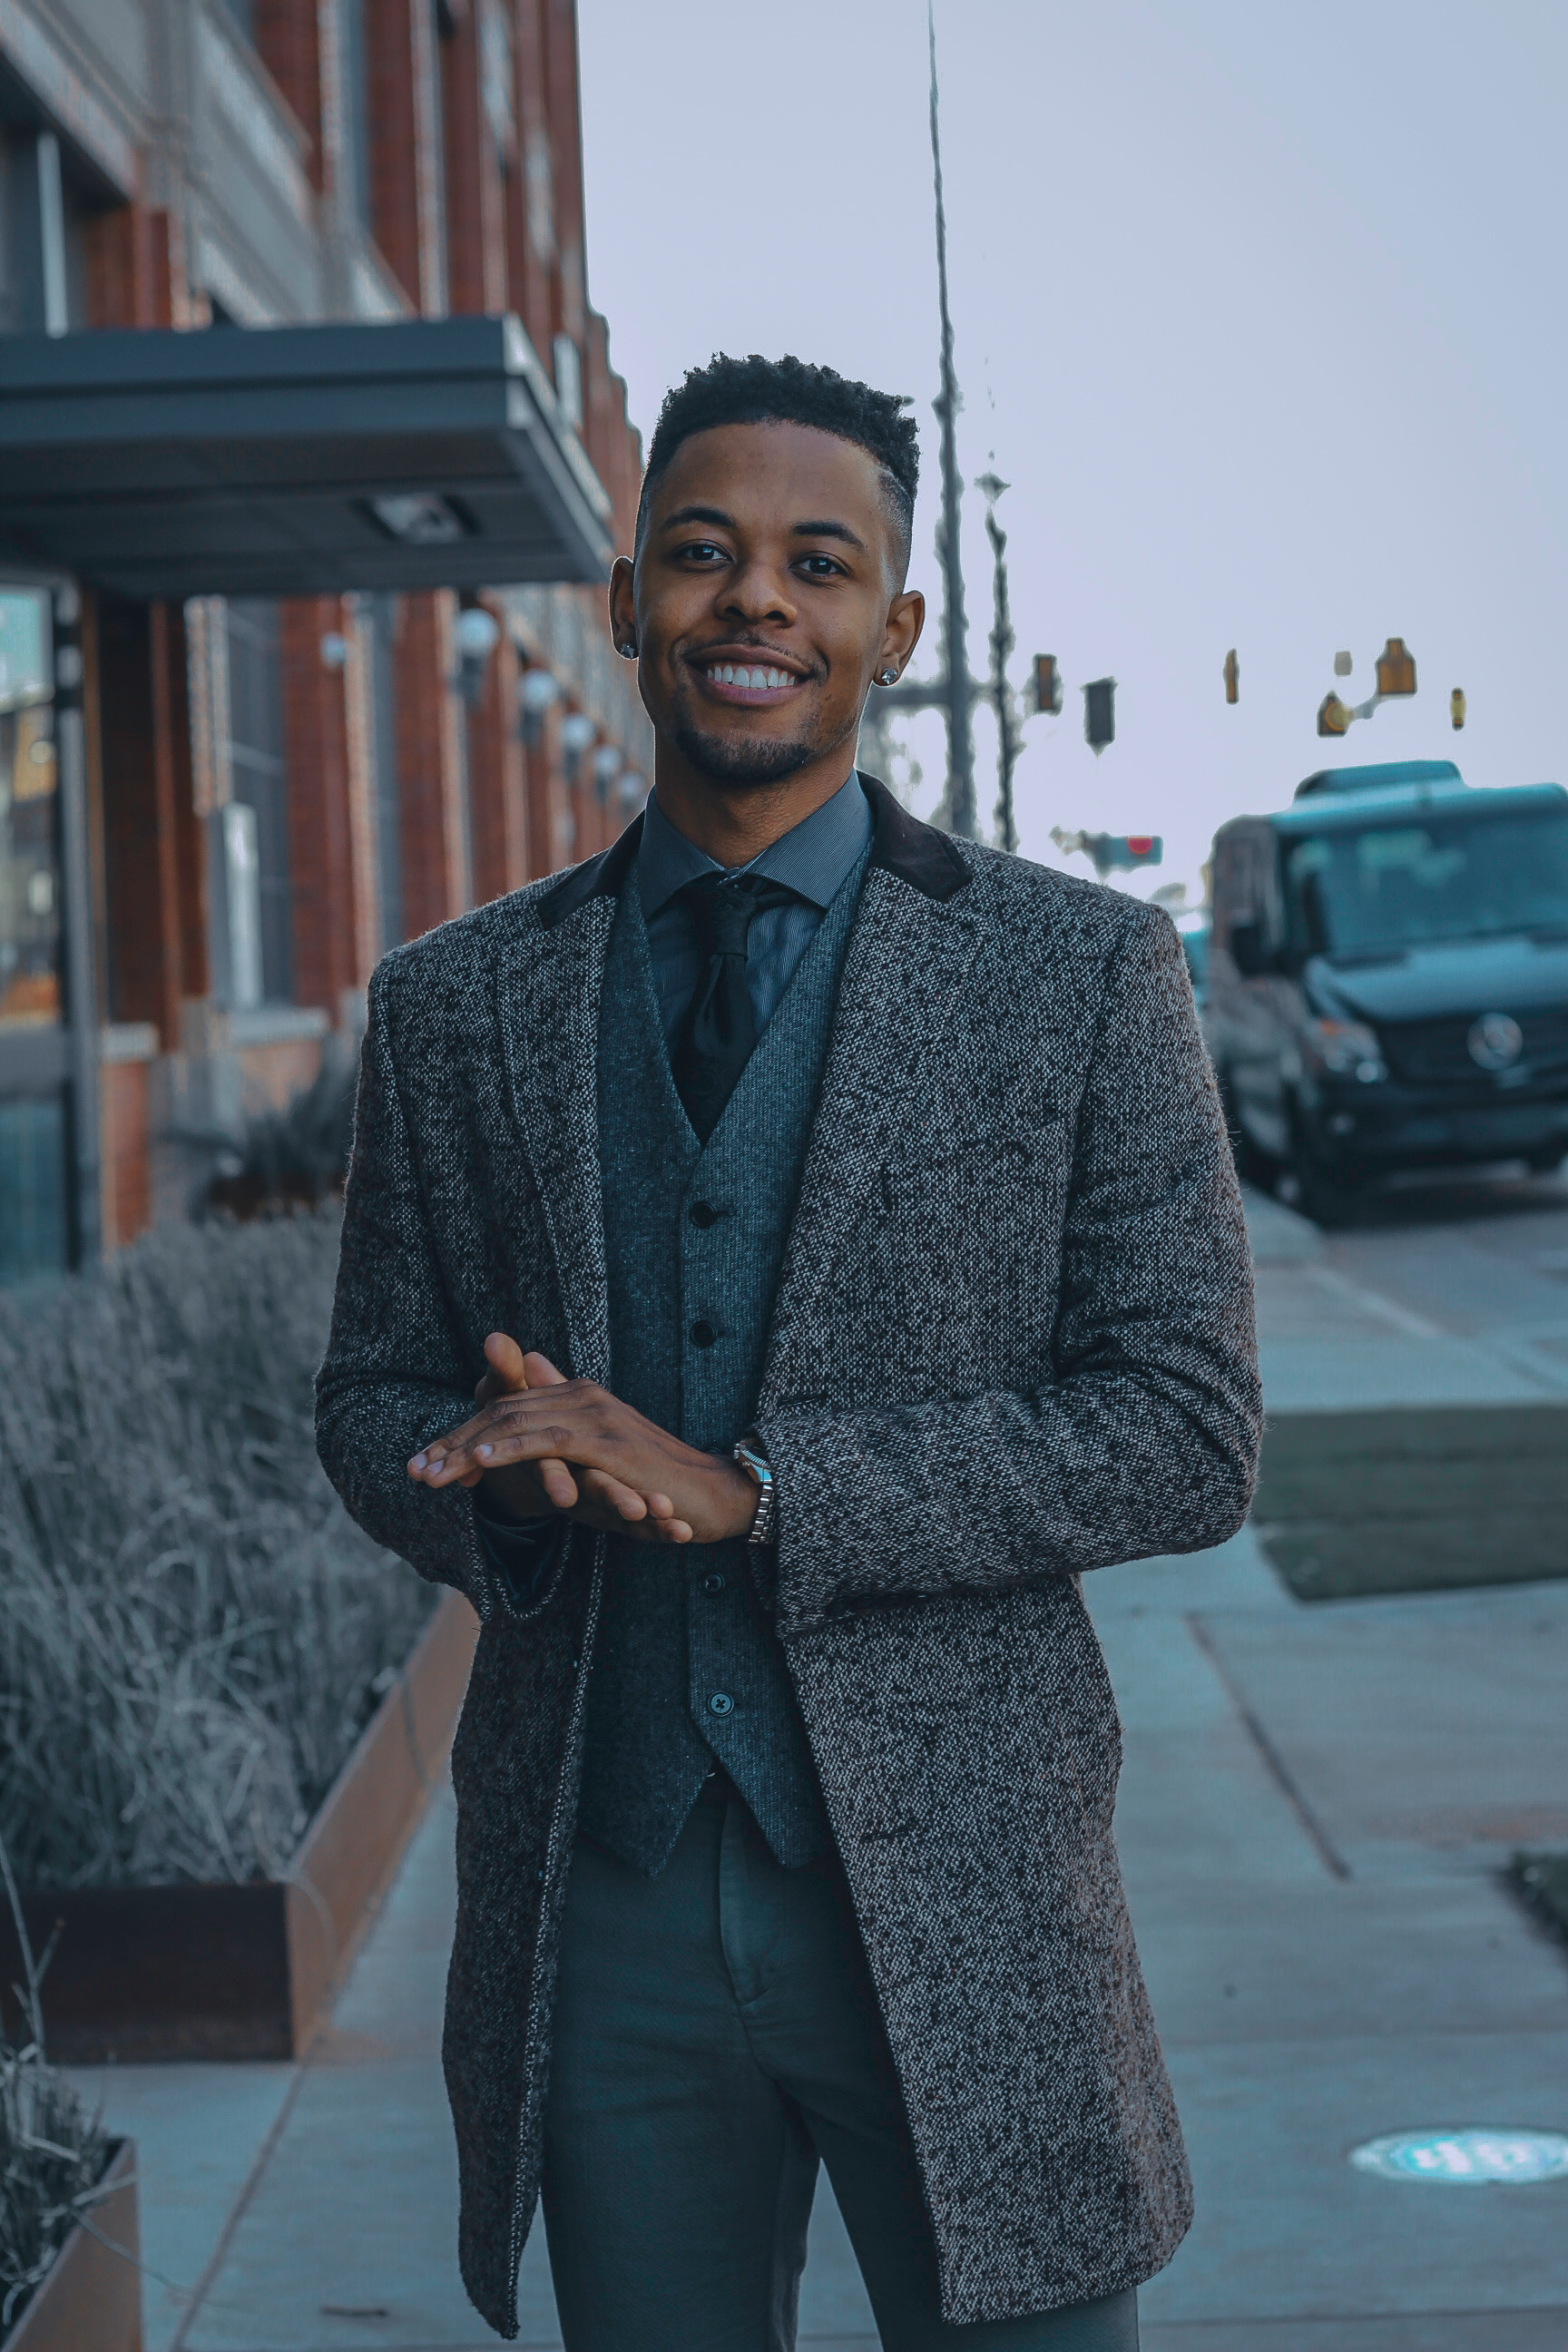 Addam Francisco - Lead Writer, Youth Mentor, Model. Addam Joined Grand Gentlemen to help other young men find their voice.